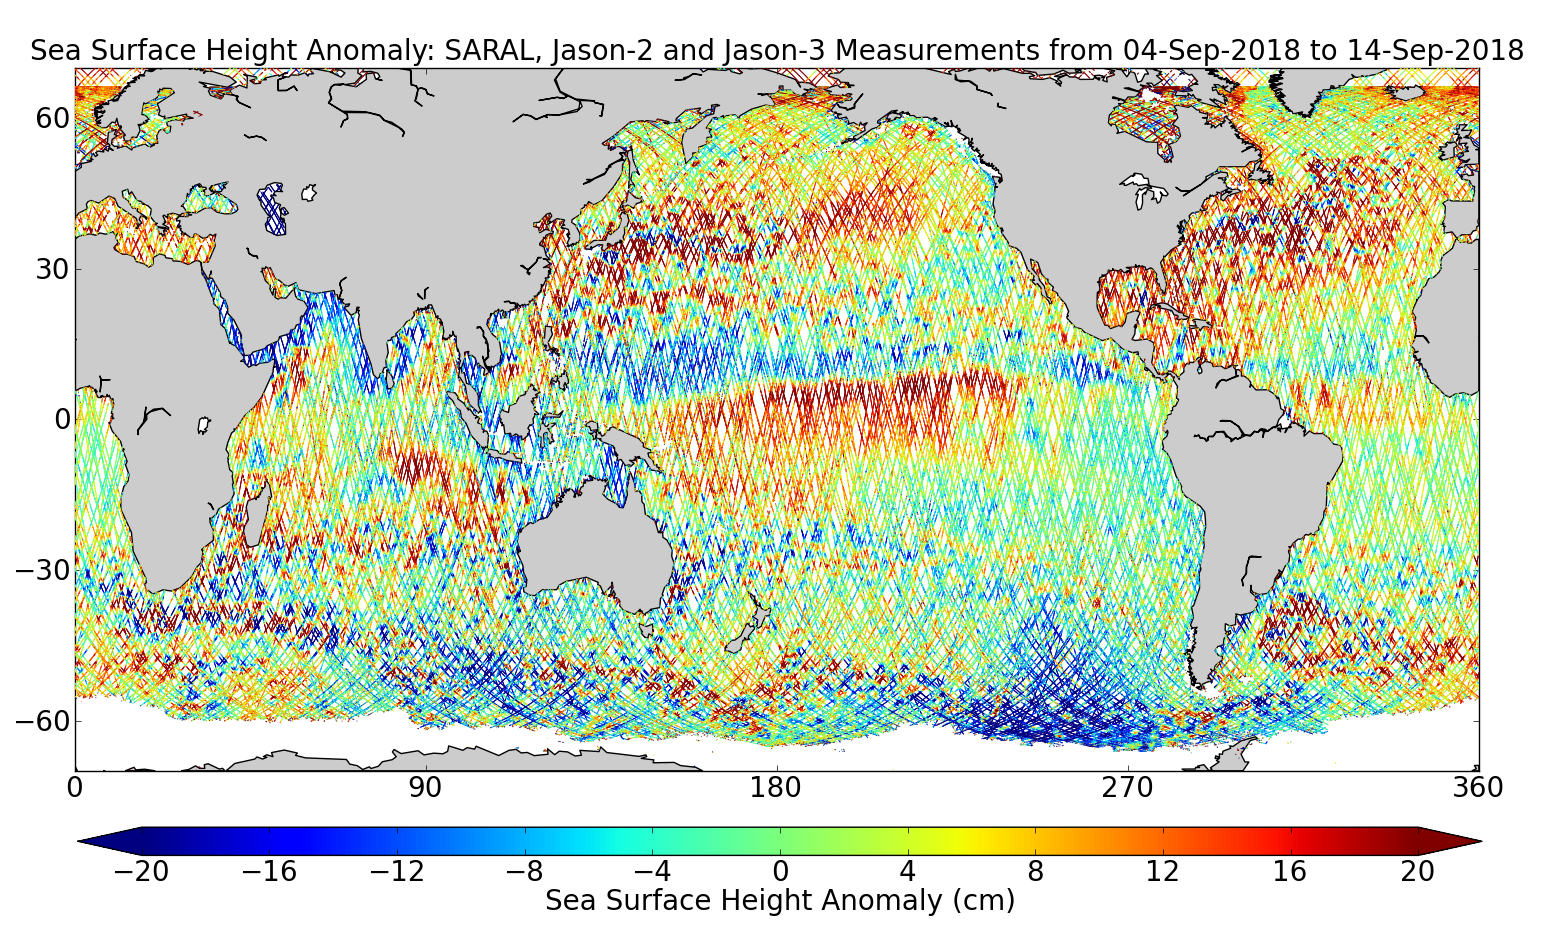 Sea Surface Height Anomaly: SARAL, Jason-2 and Jason-3 Measurements from 04-Sep-2018 to 14-Sep-2018